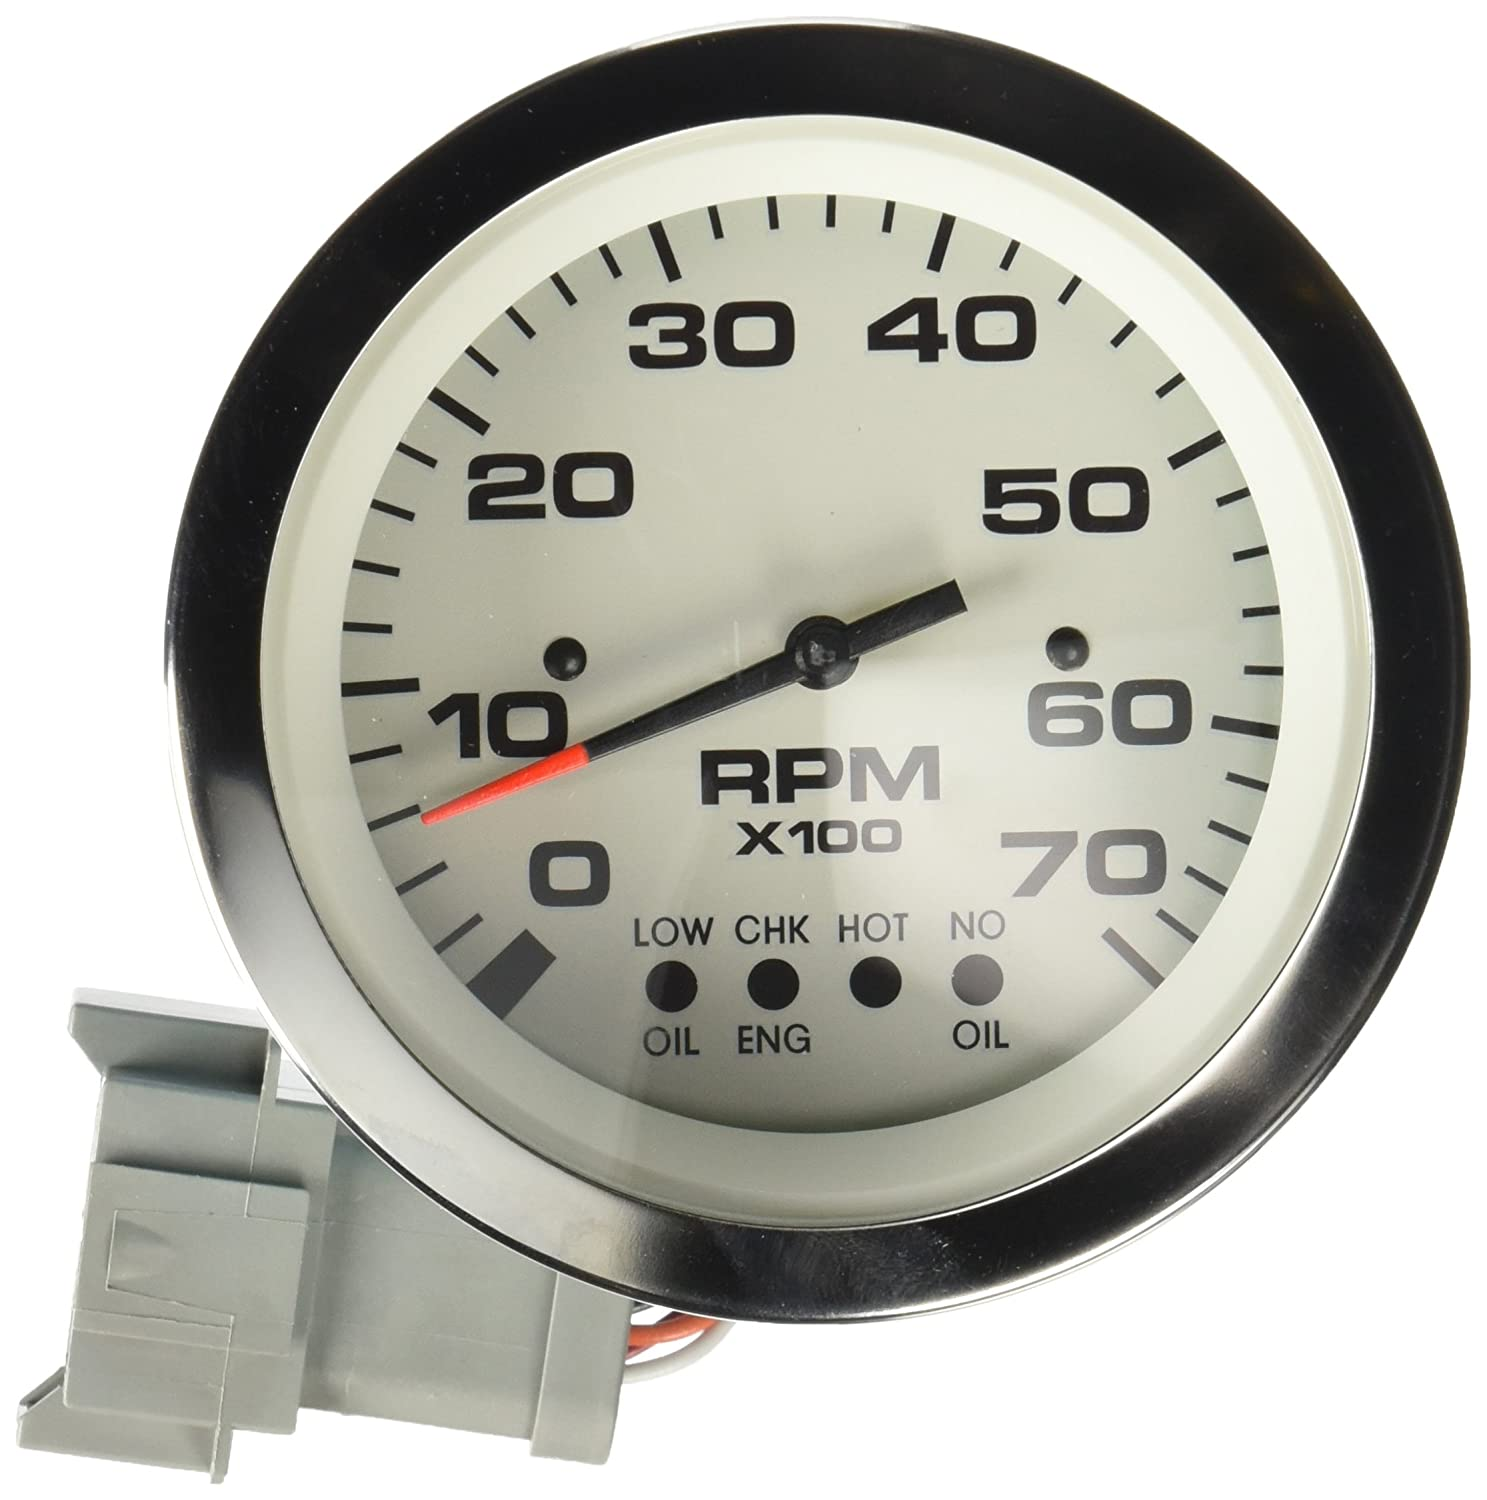 omc system check gauges wiring harness wiring library 2001 Chevrolet 2500 Dash Wiring Harness